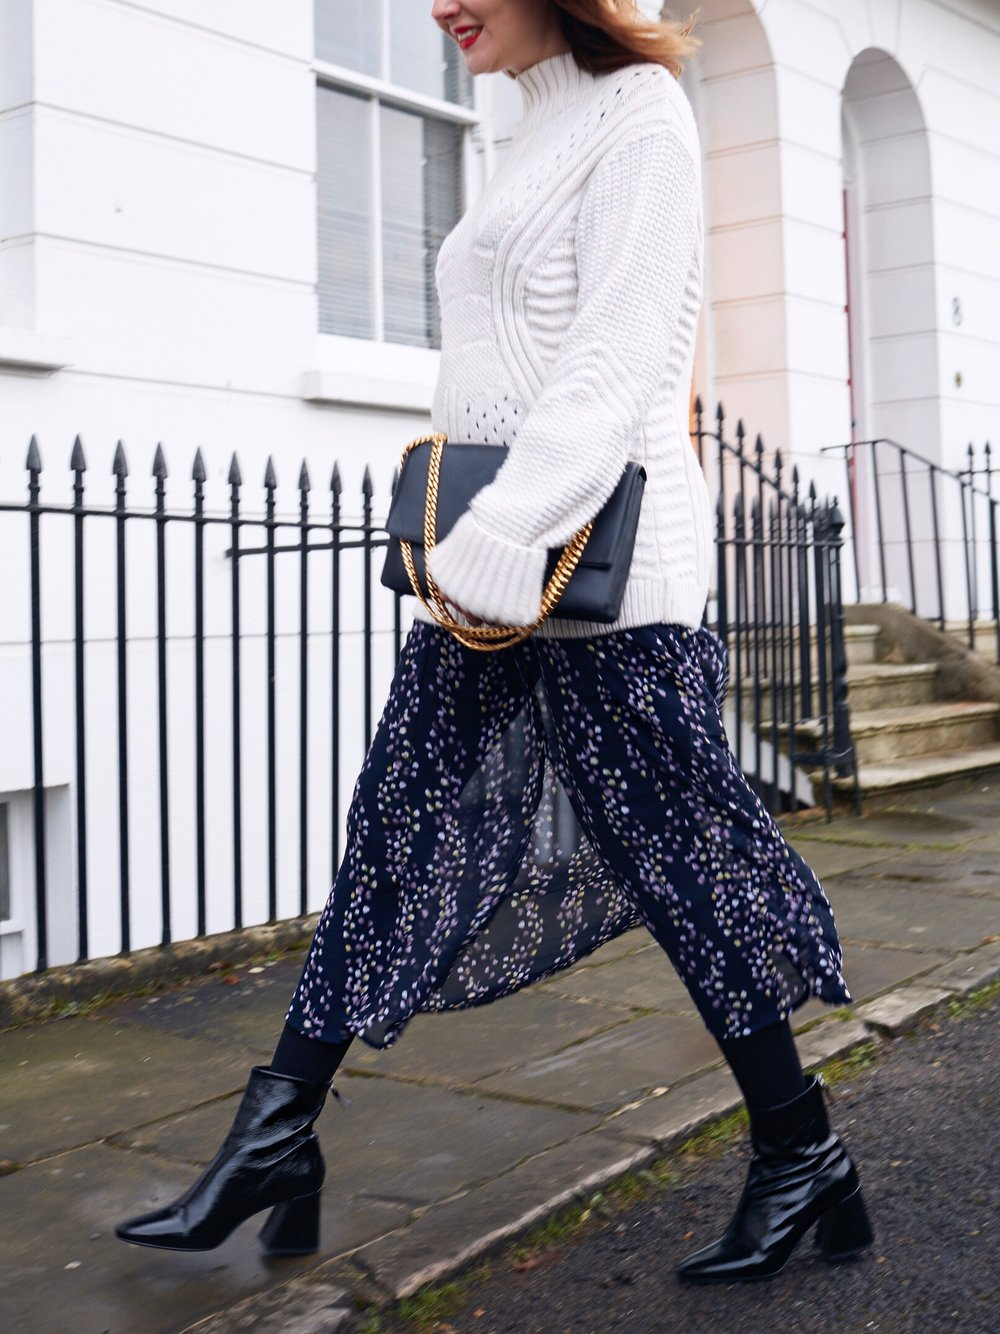 THE GROWN UP EDIT - Floral skirt